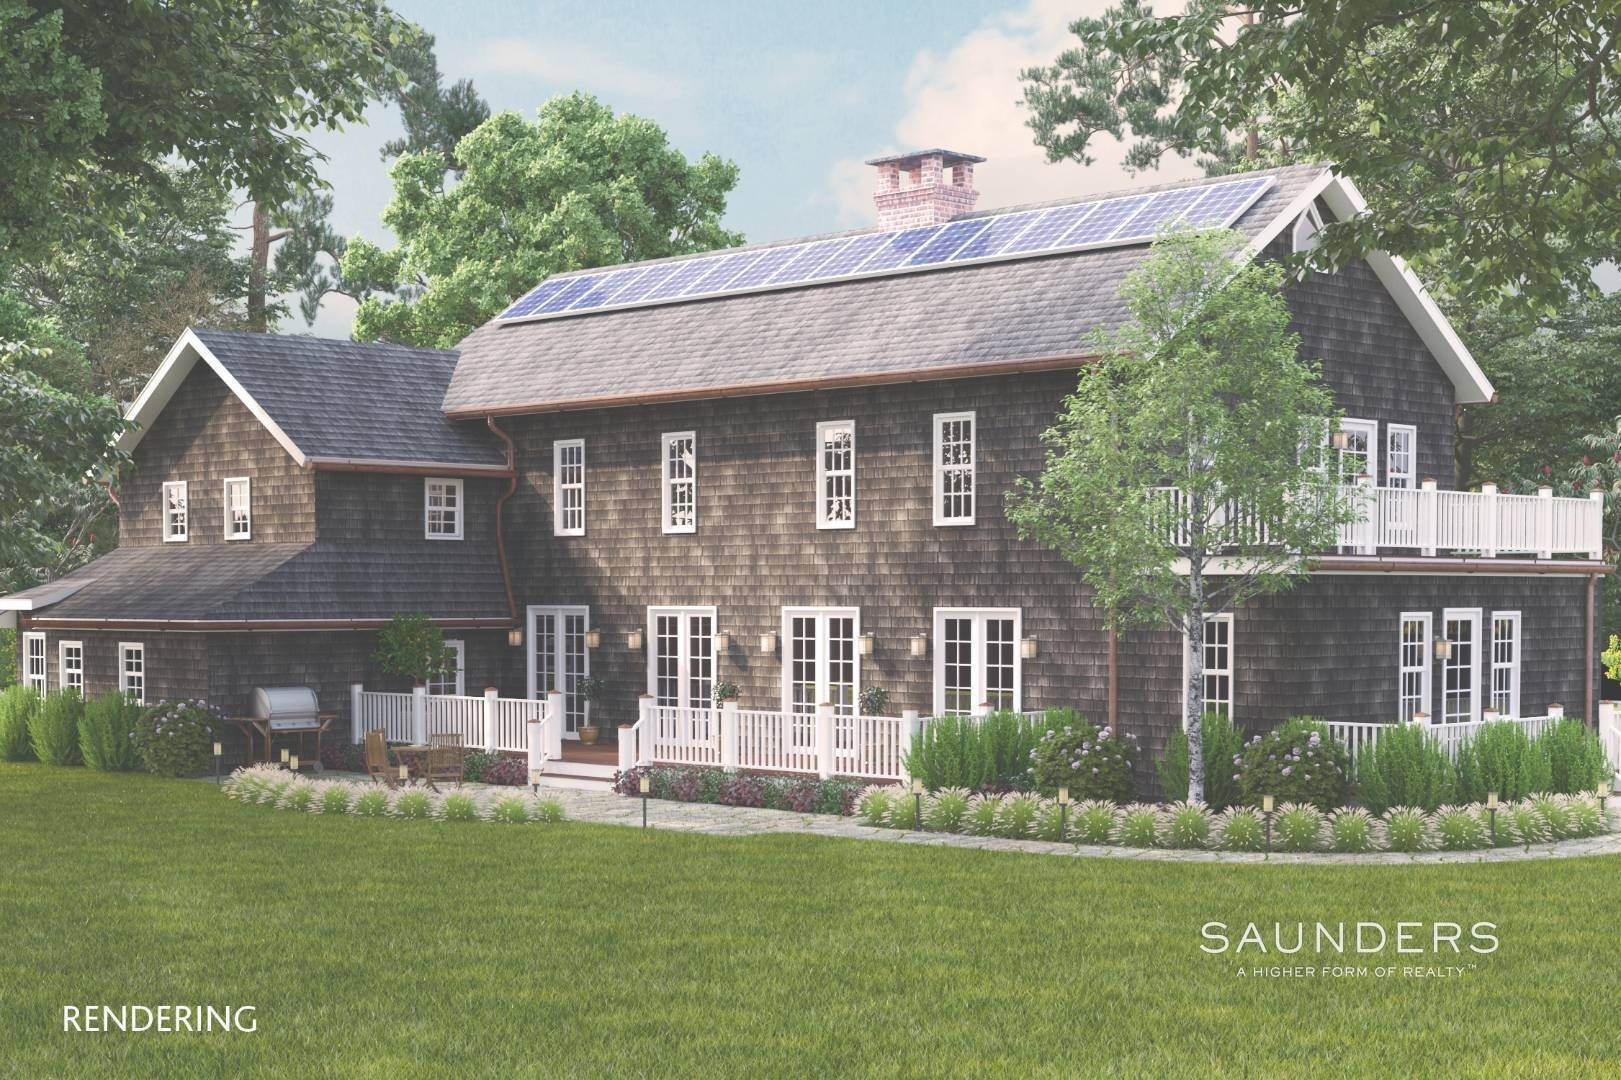 Single Family Homes for Sale at Amagansett Proposed New Construction 36 Fresh Pond Road, Amagansett, East Hampton Town, NY 11930